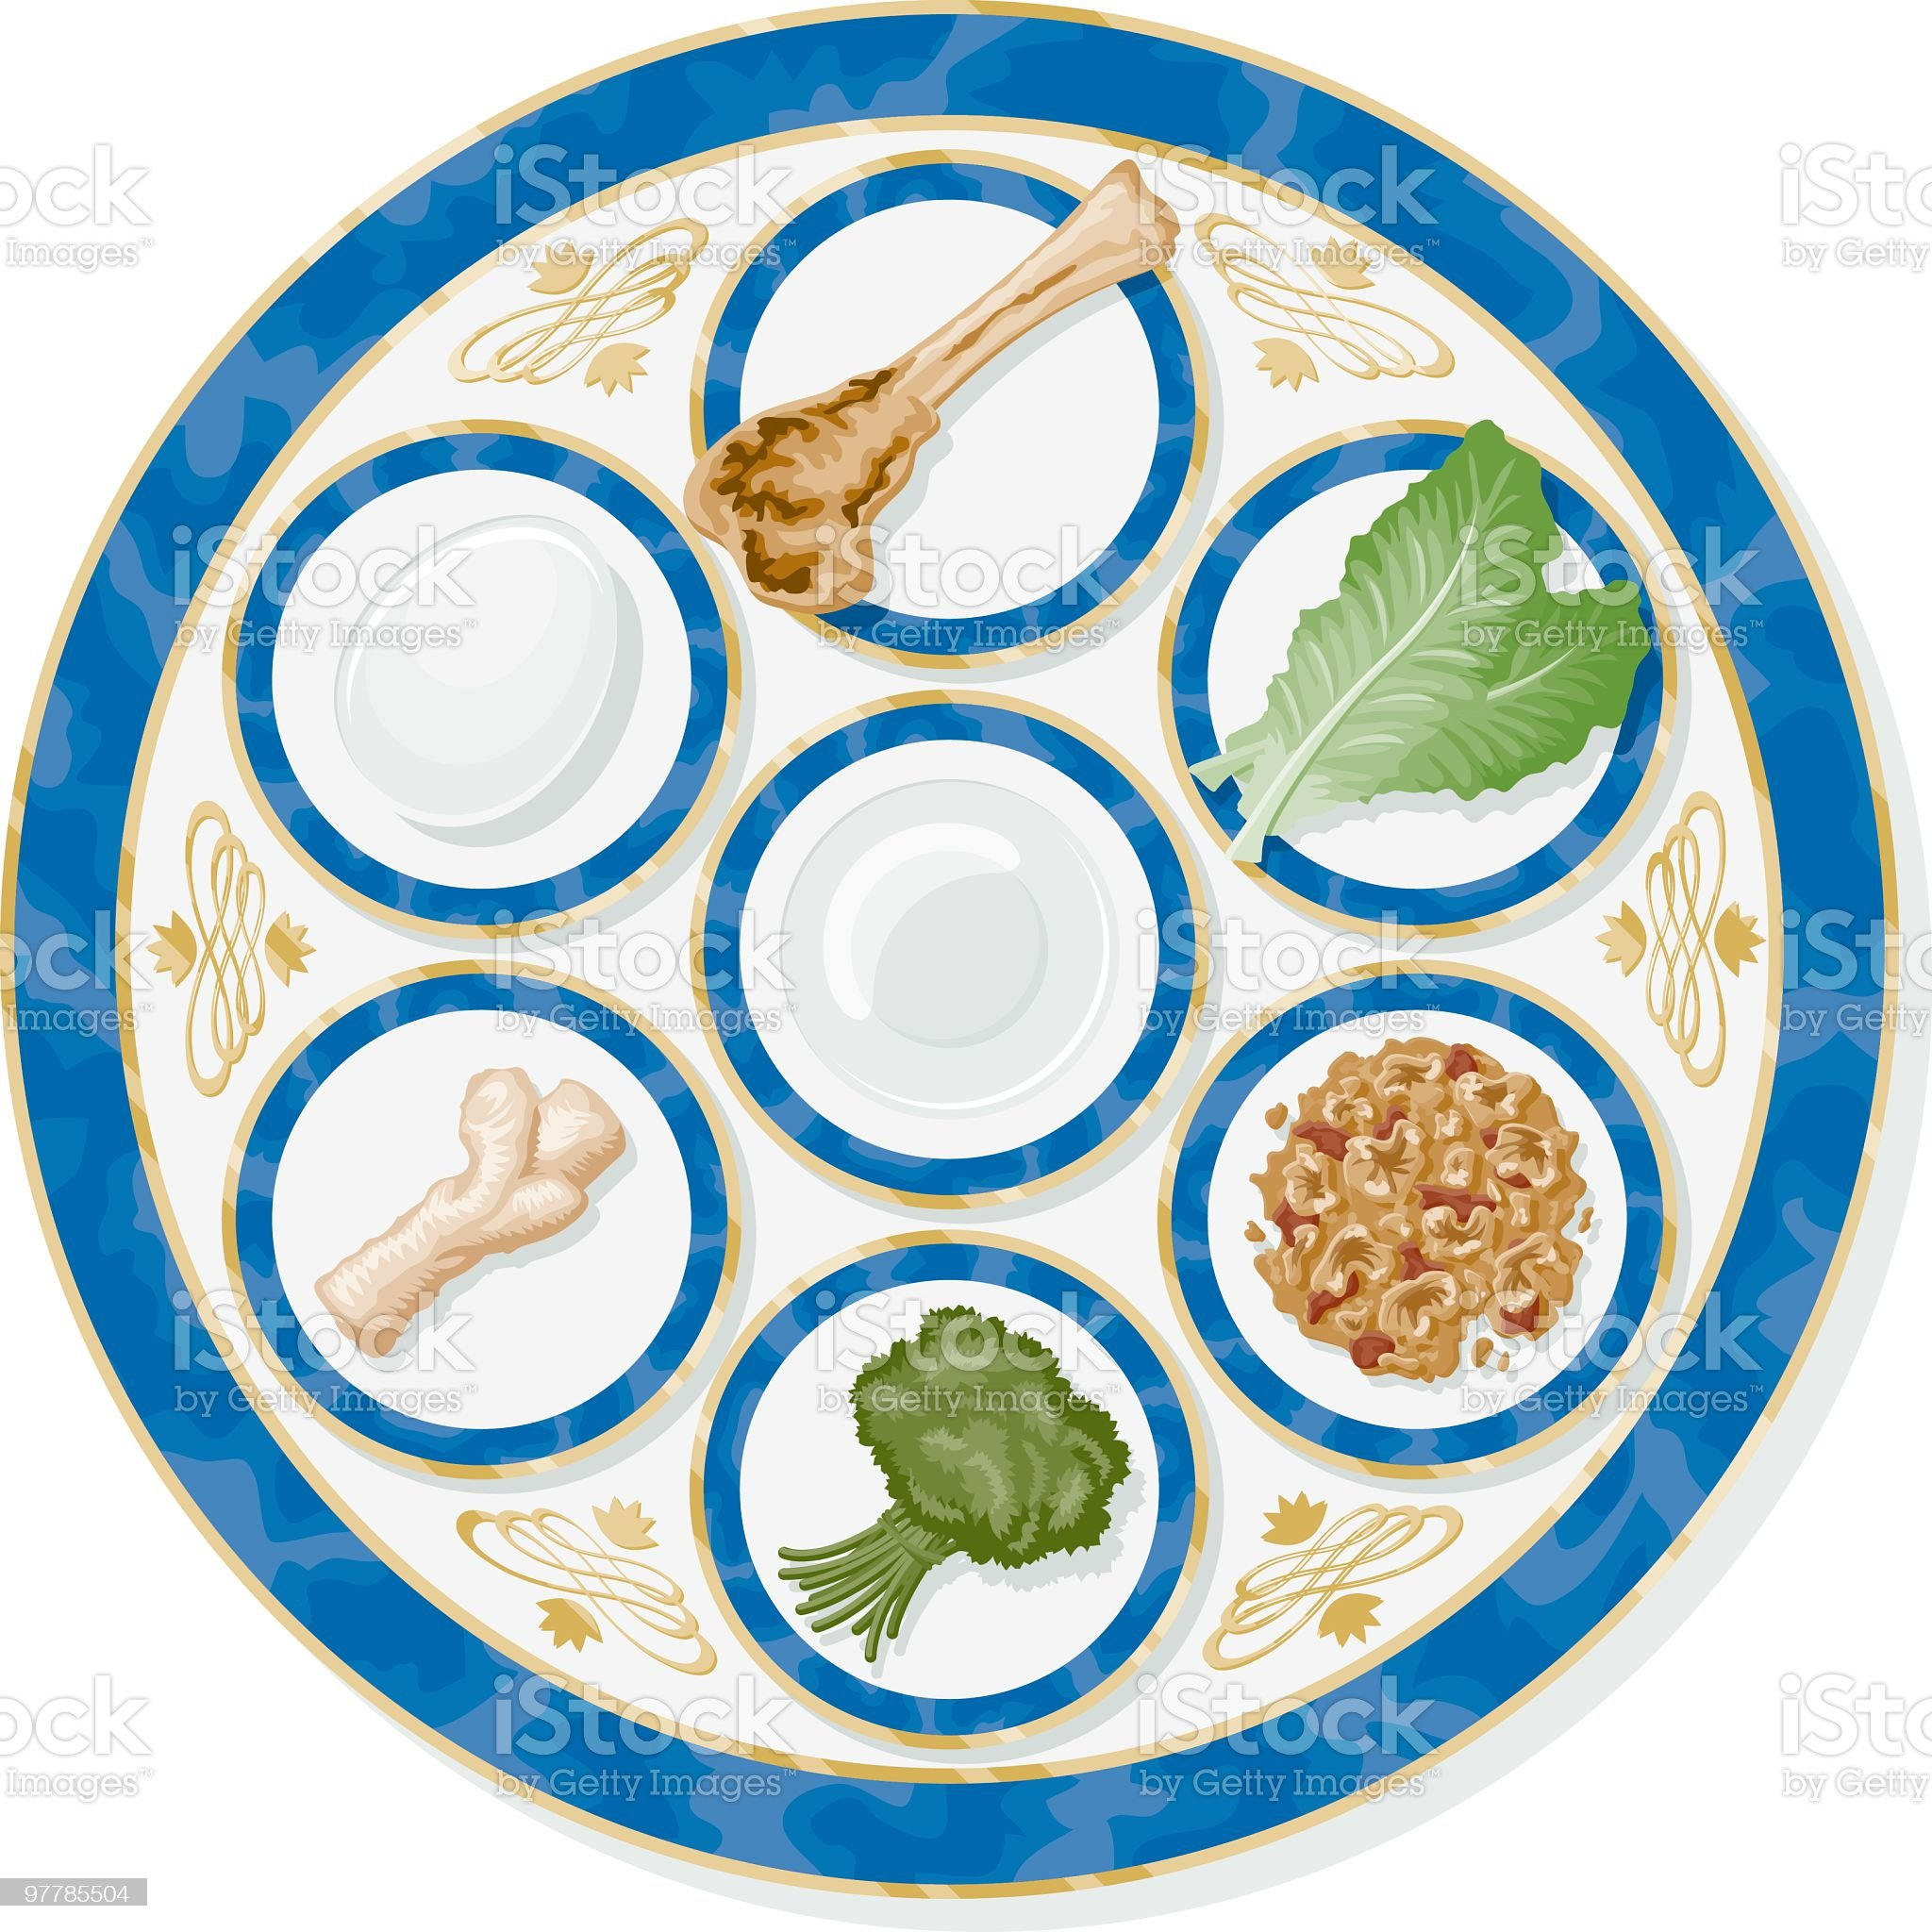 Passover Seder Plate royalty-free stock vector art